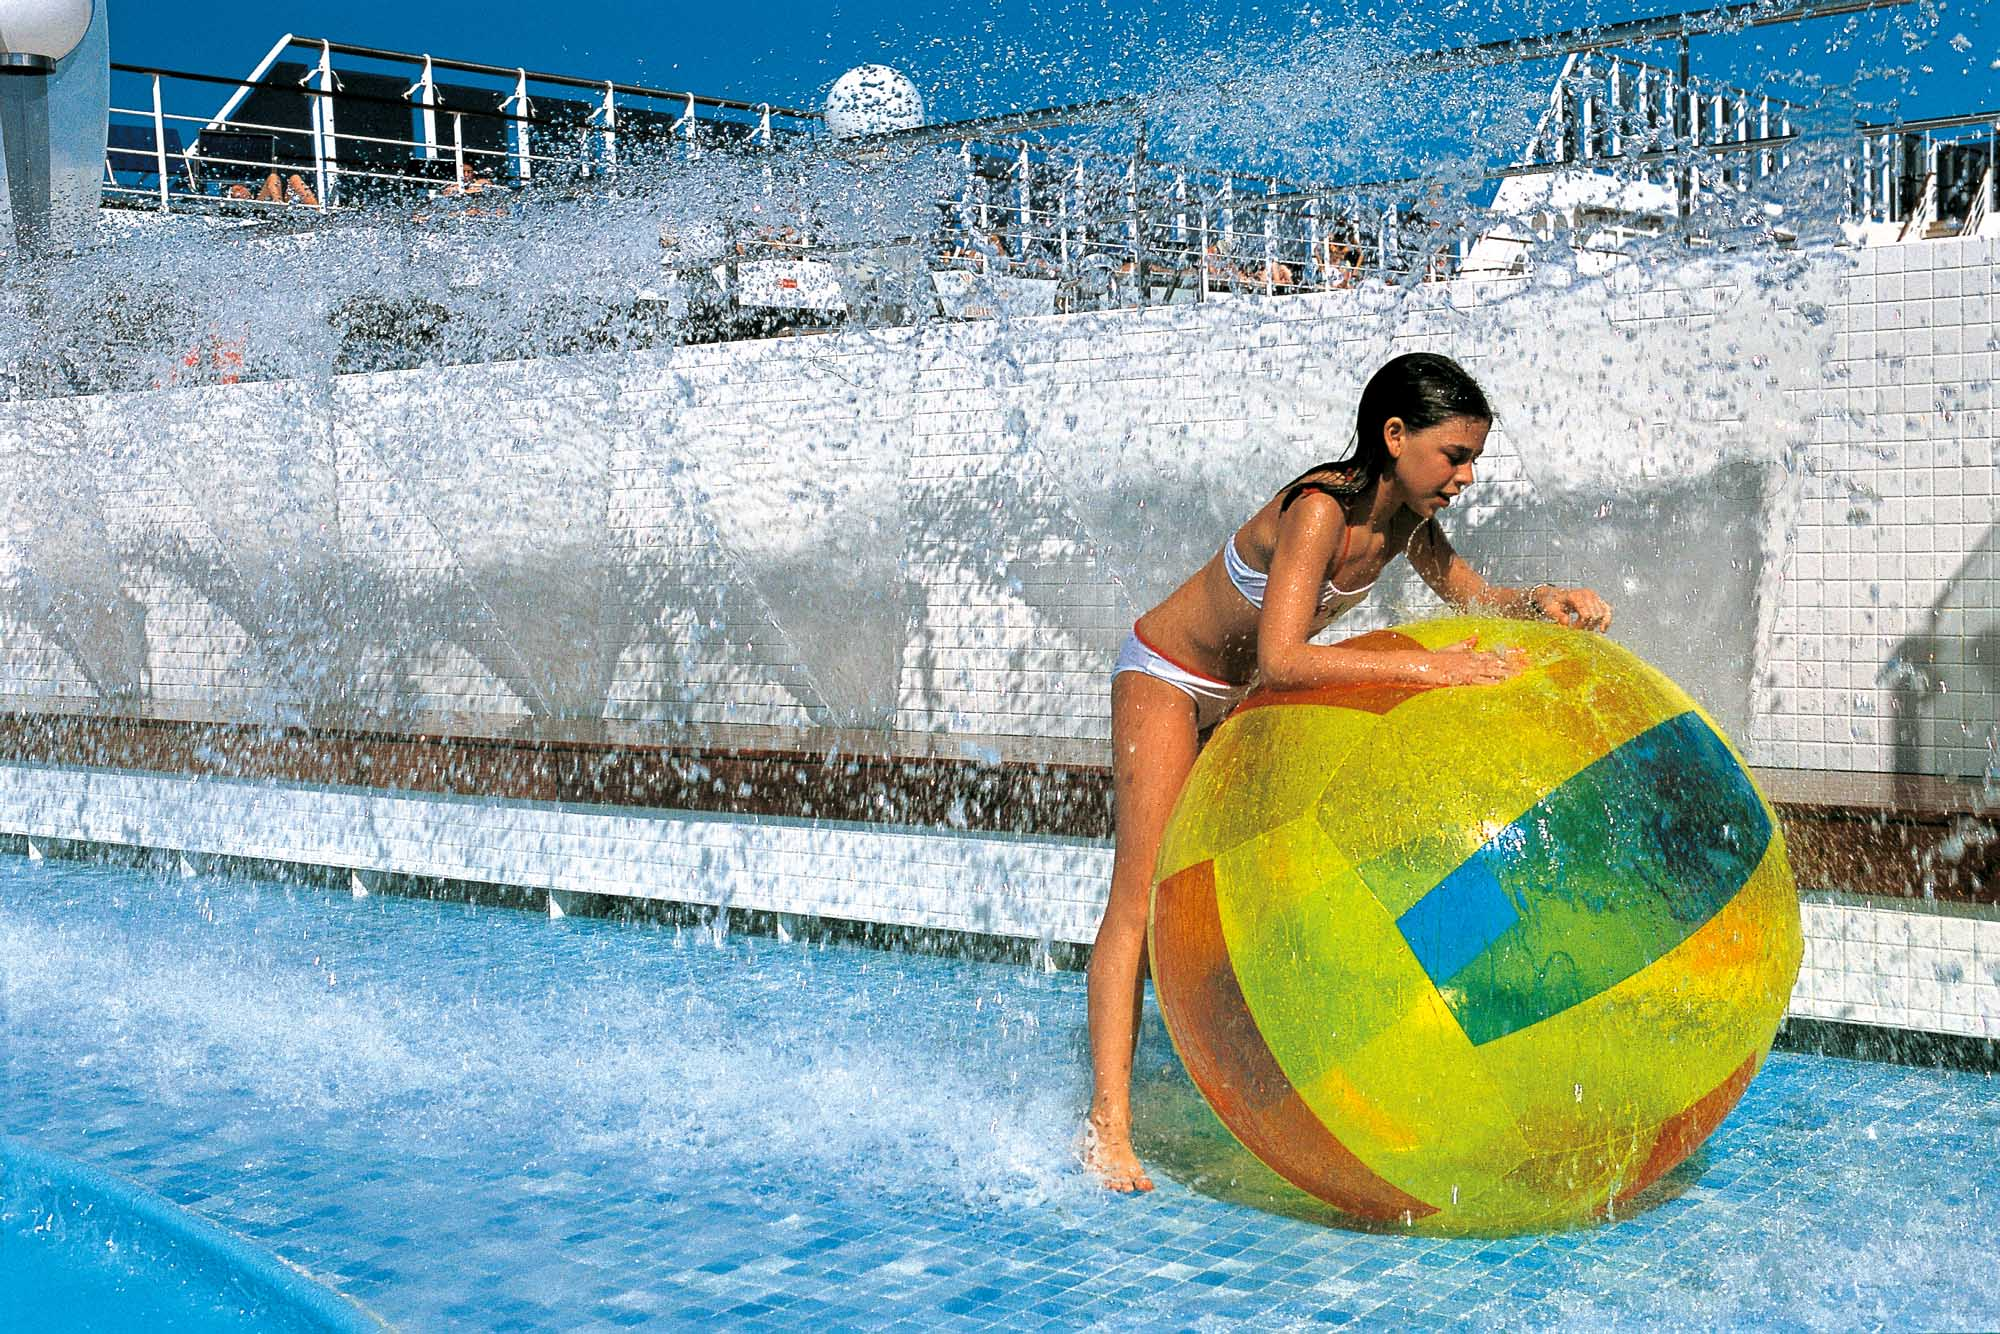 MSC cruise ships are family friendly, with pools and entertainment areas dedicated to children and teens.